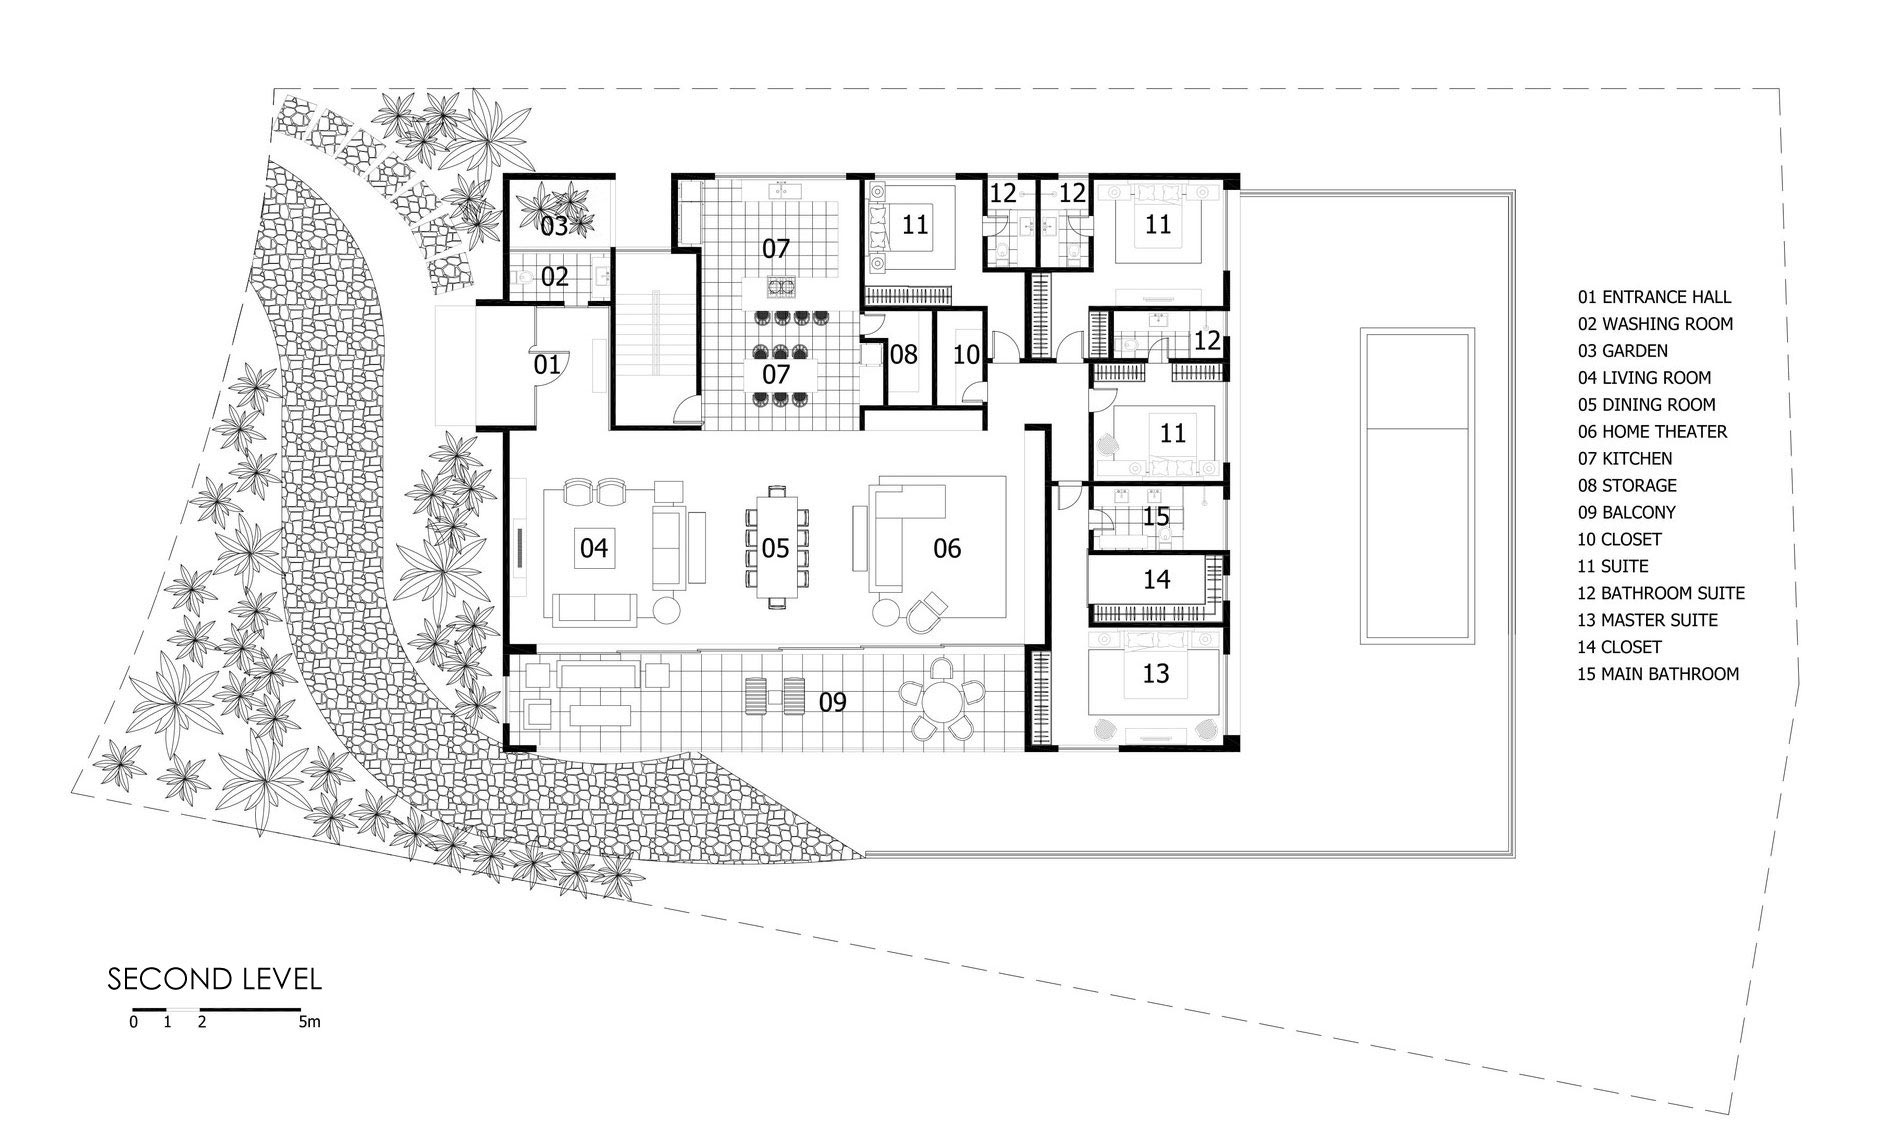 Normal 2 Car Garage Size also England House Plans as well Barn Plans Carriage House further Art 4 S le Project 2 also Large Coastal Home Plan 4 Car Garage. on pool house with carport